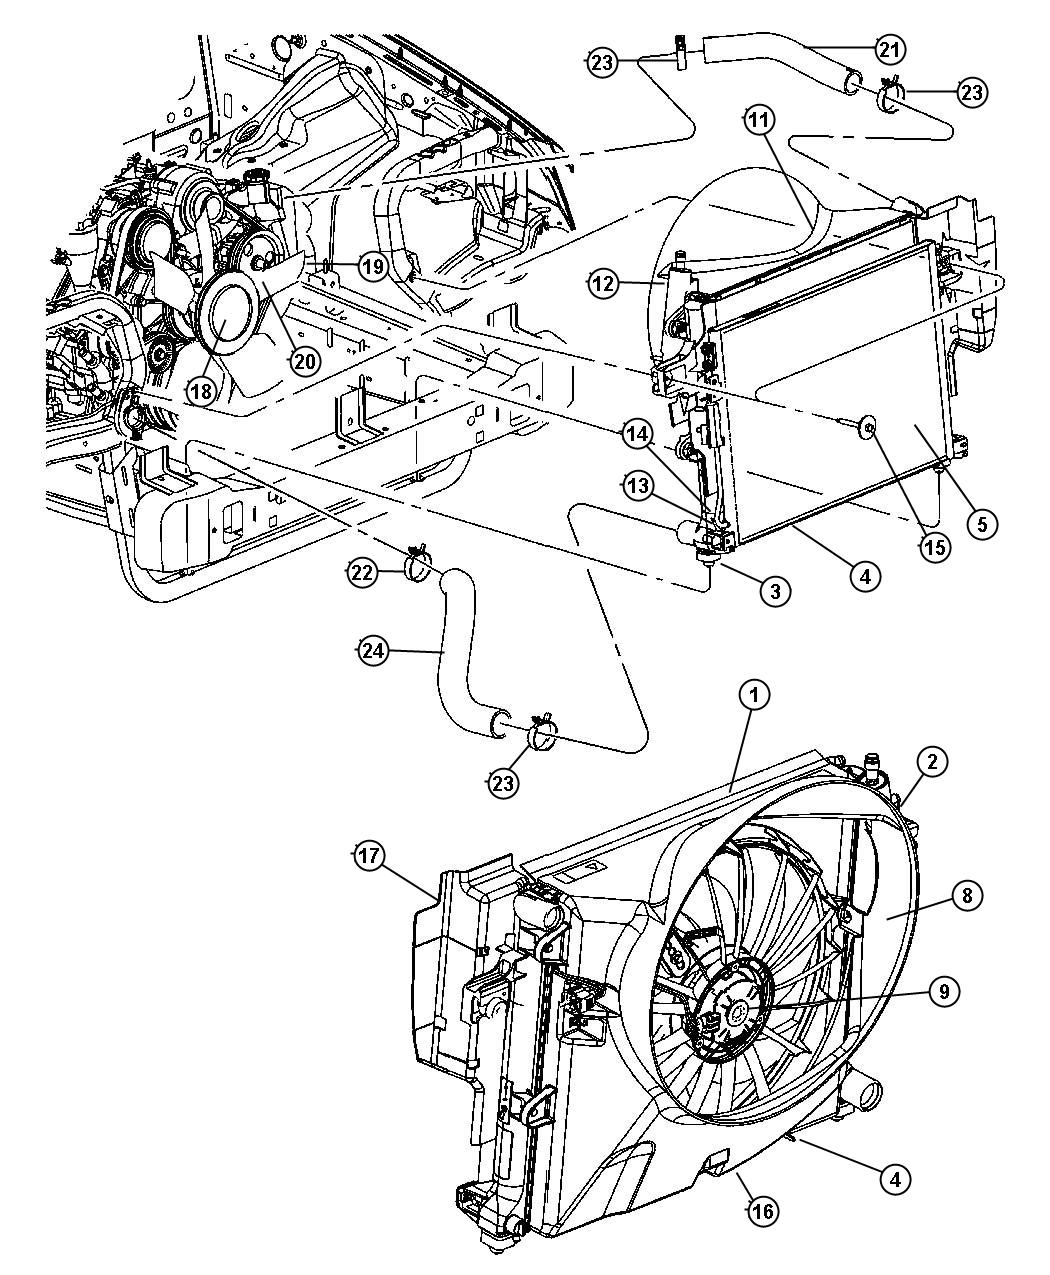 Diagram Radiator and Related Parts 4.7L [4.7L V8 MPI Engine] Engine. for your 2008 Jeep